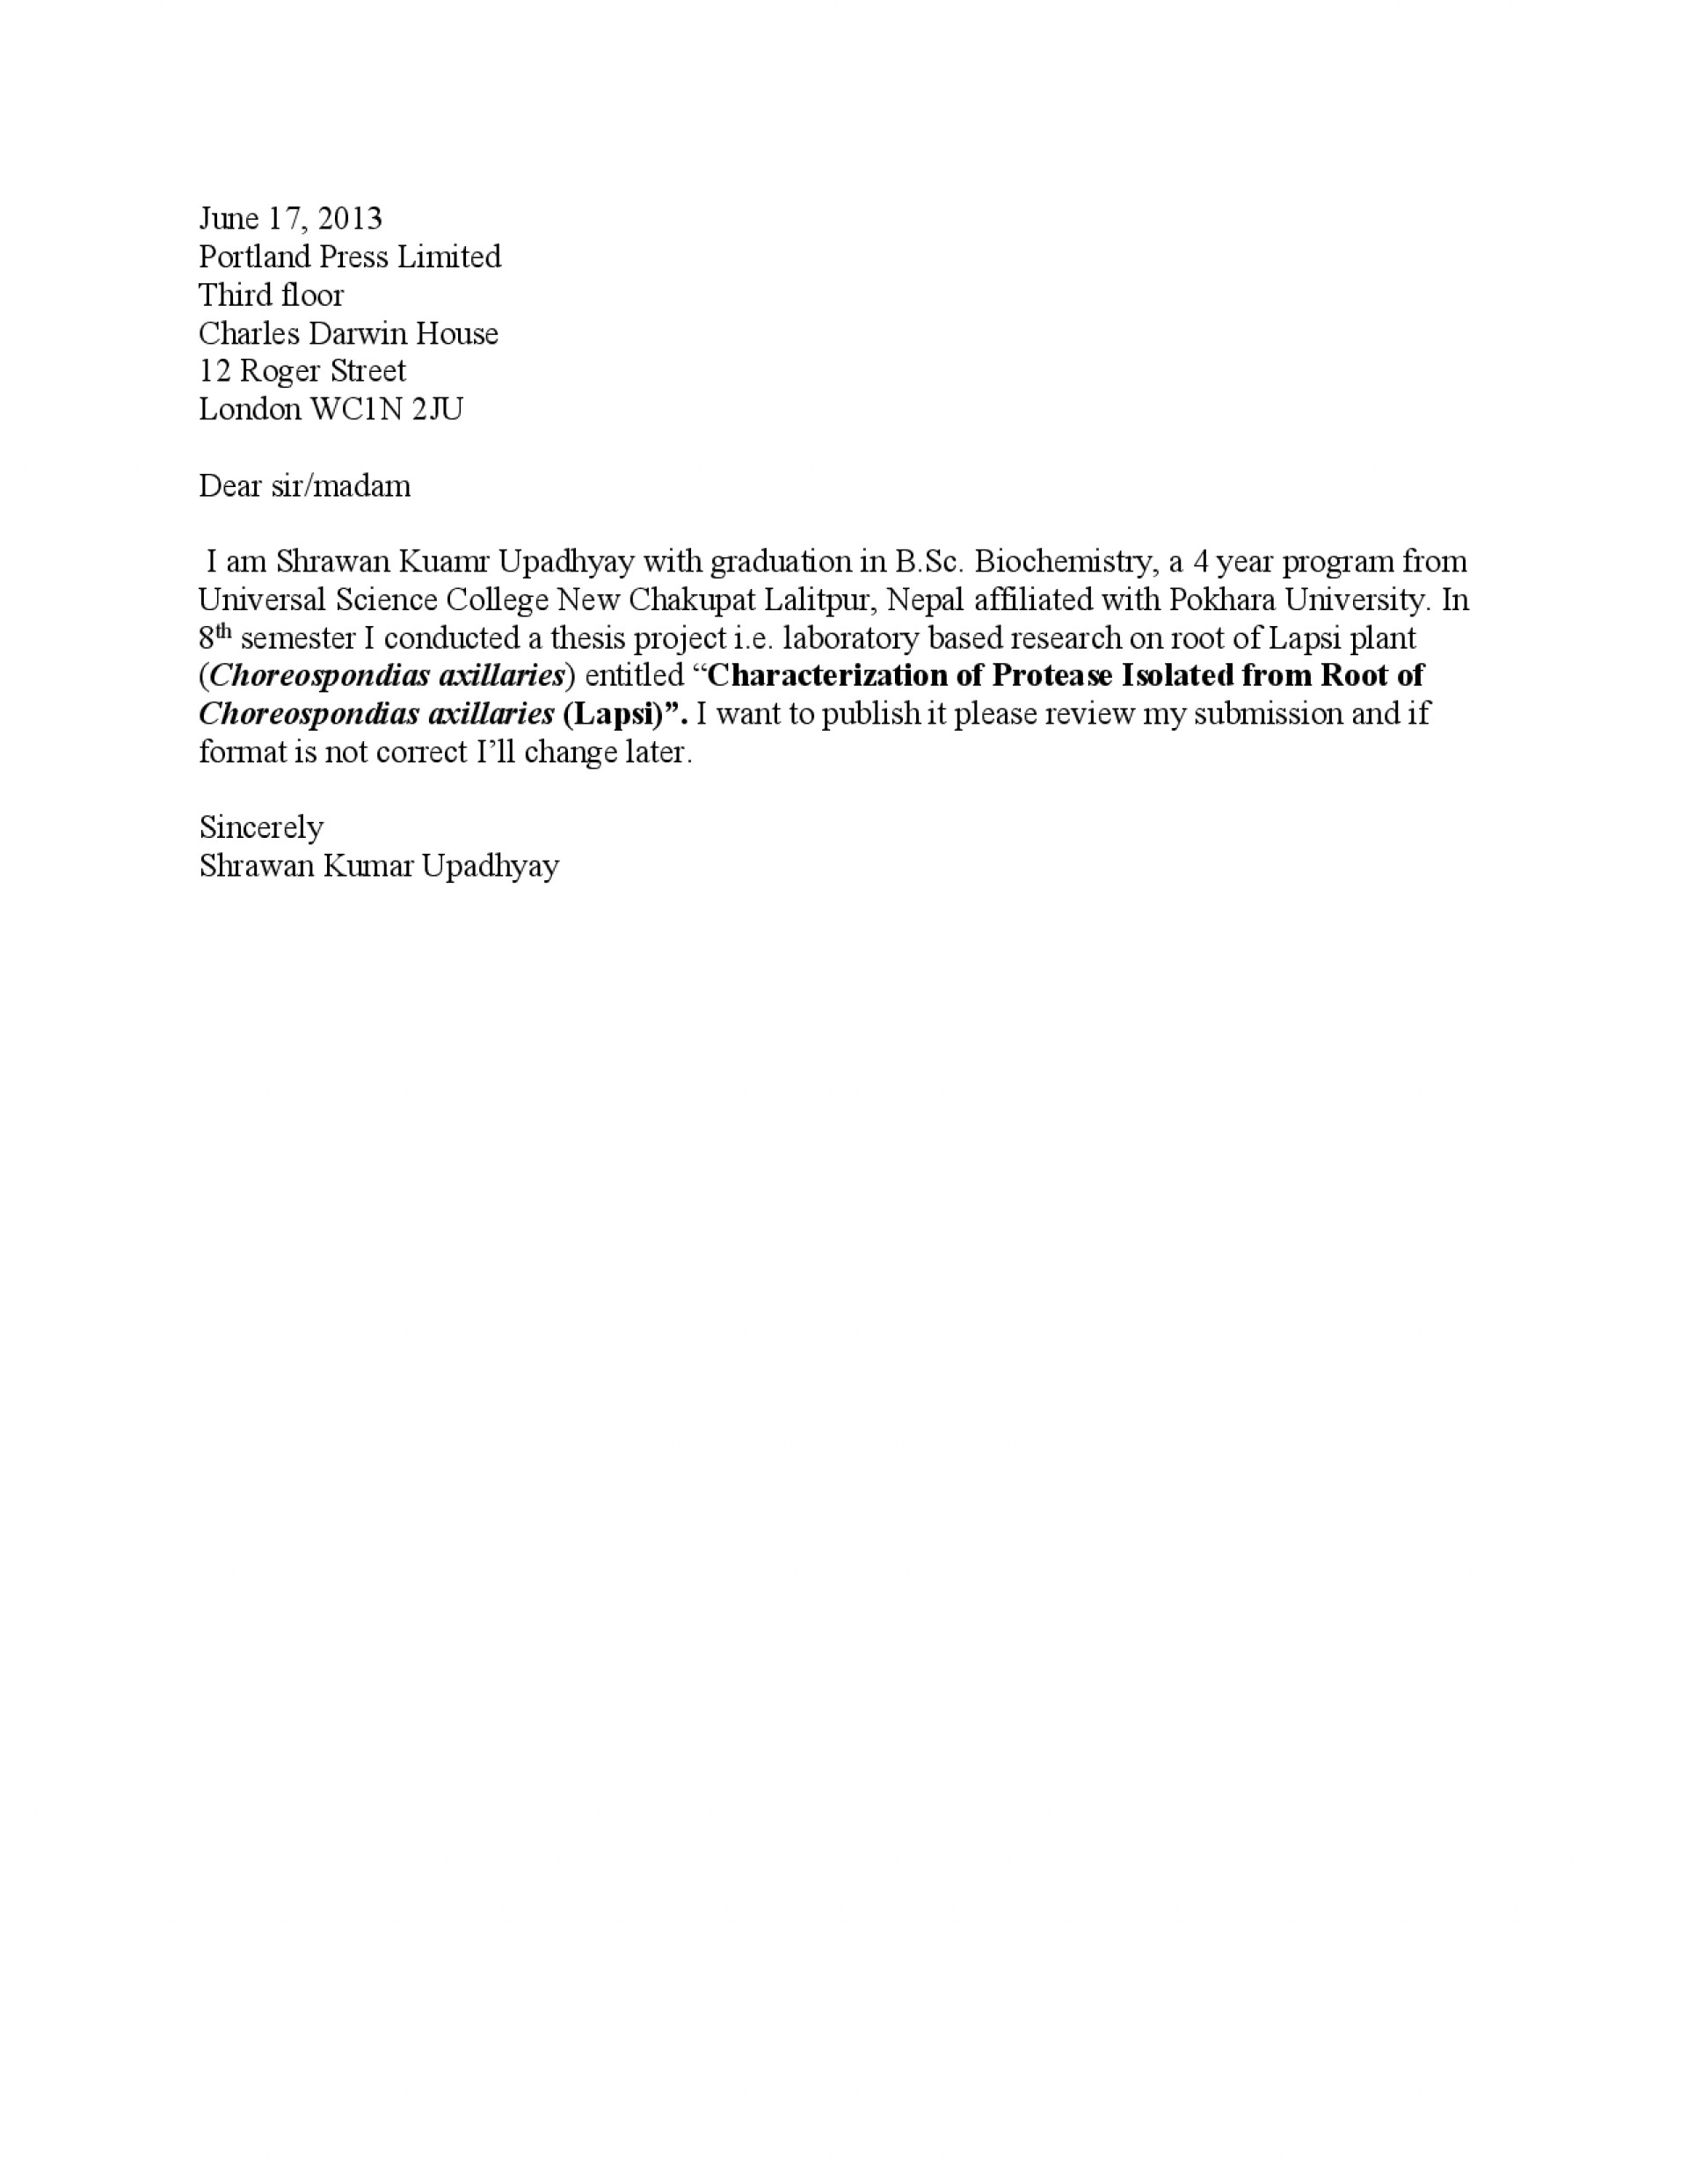 016 Cover Letter Research Paper Template For